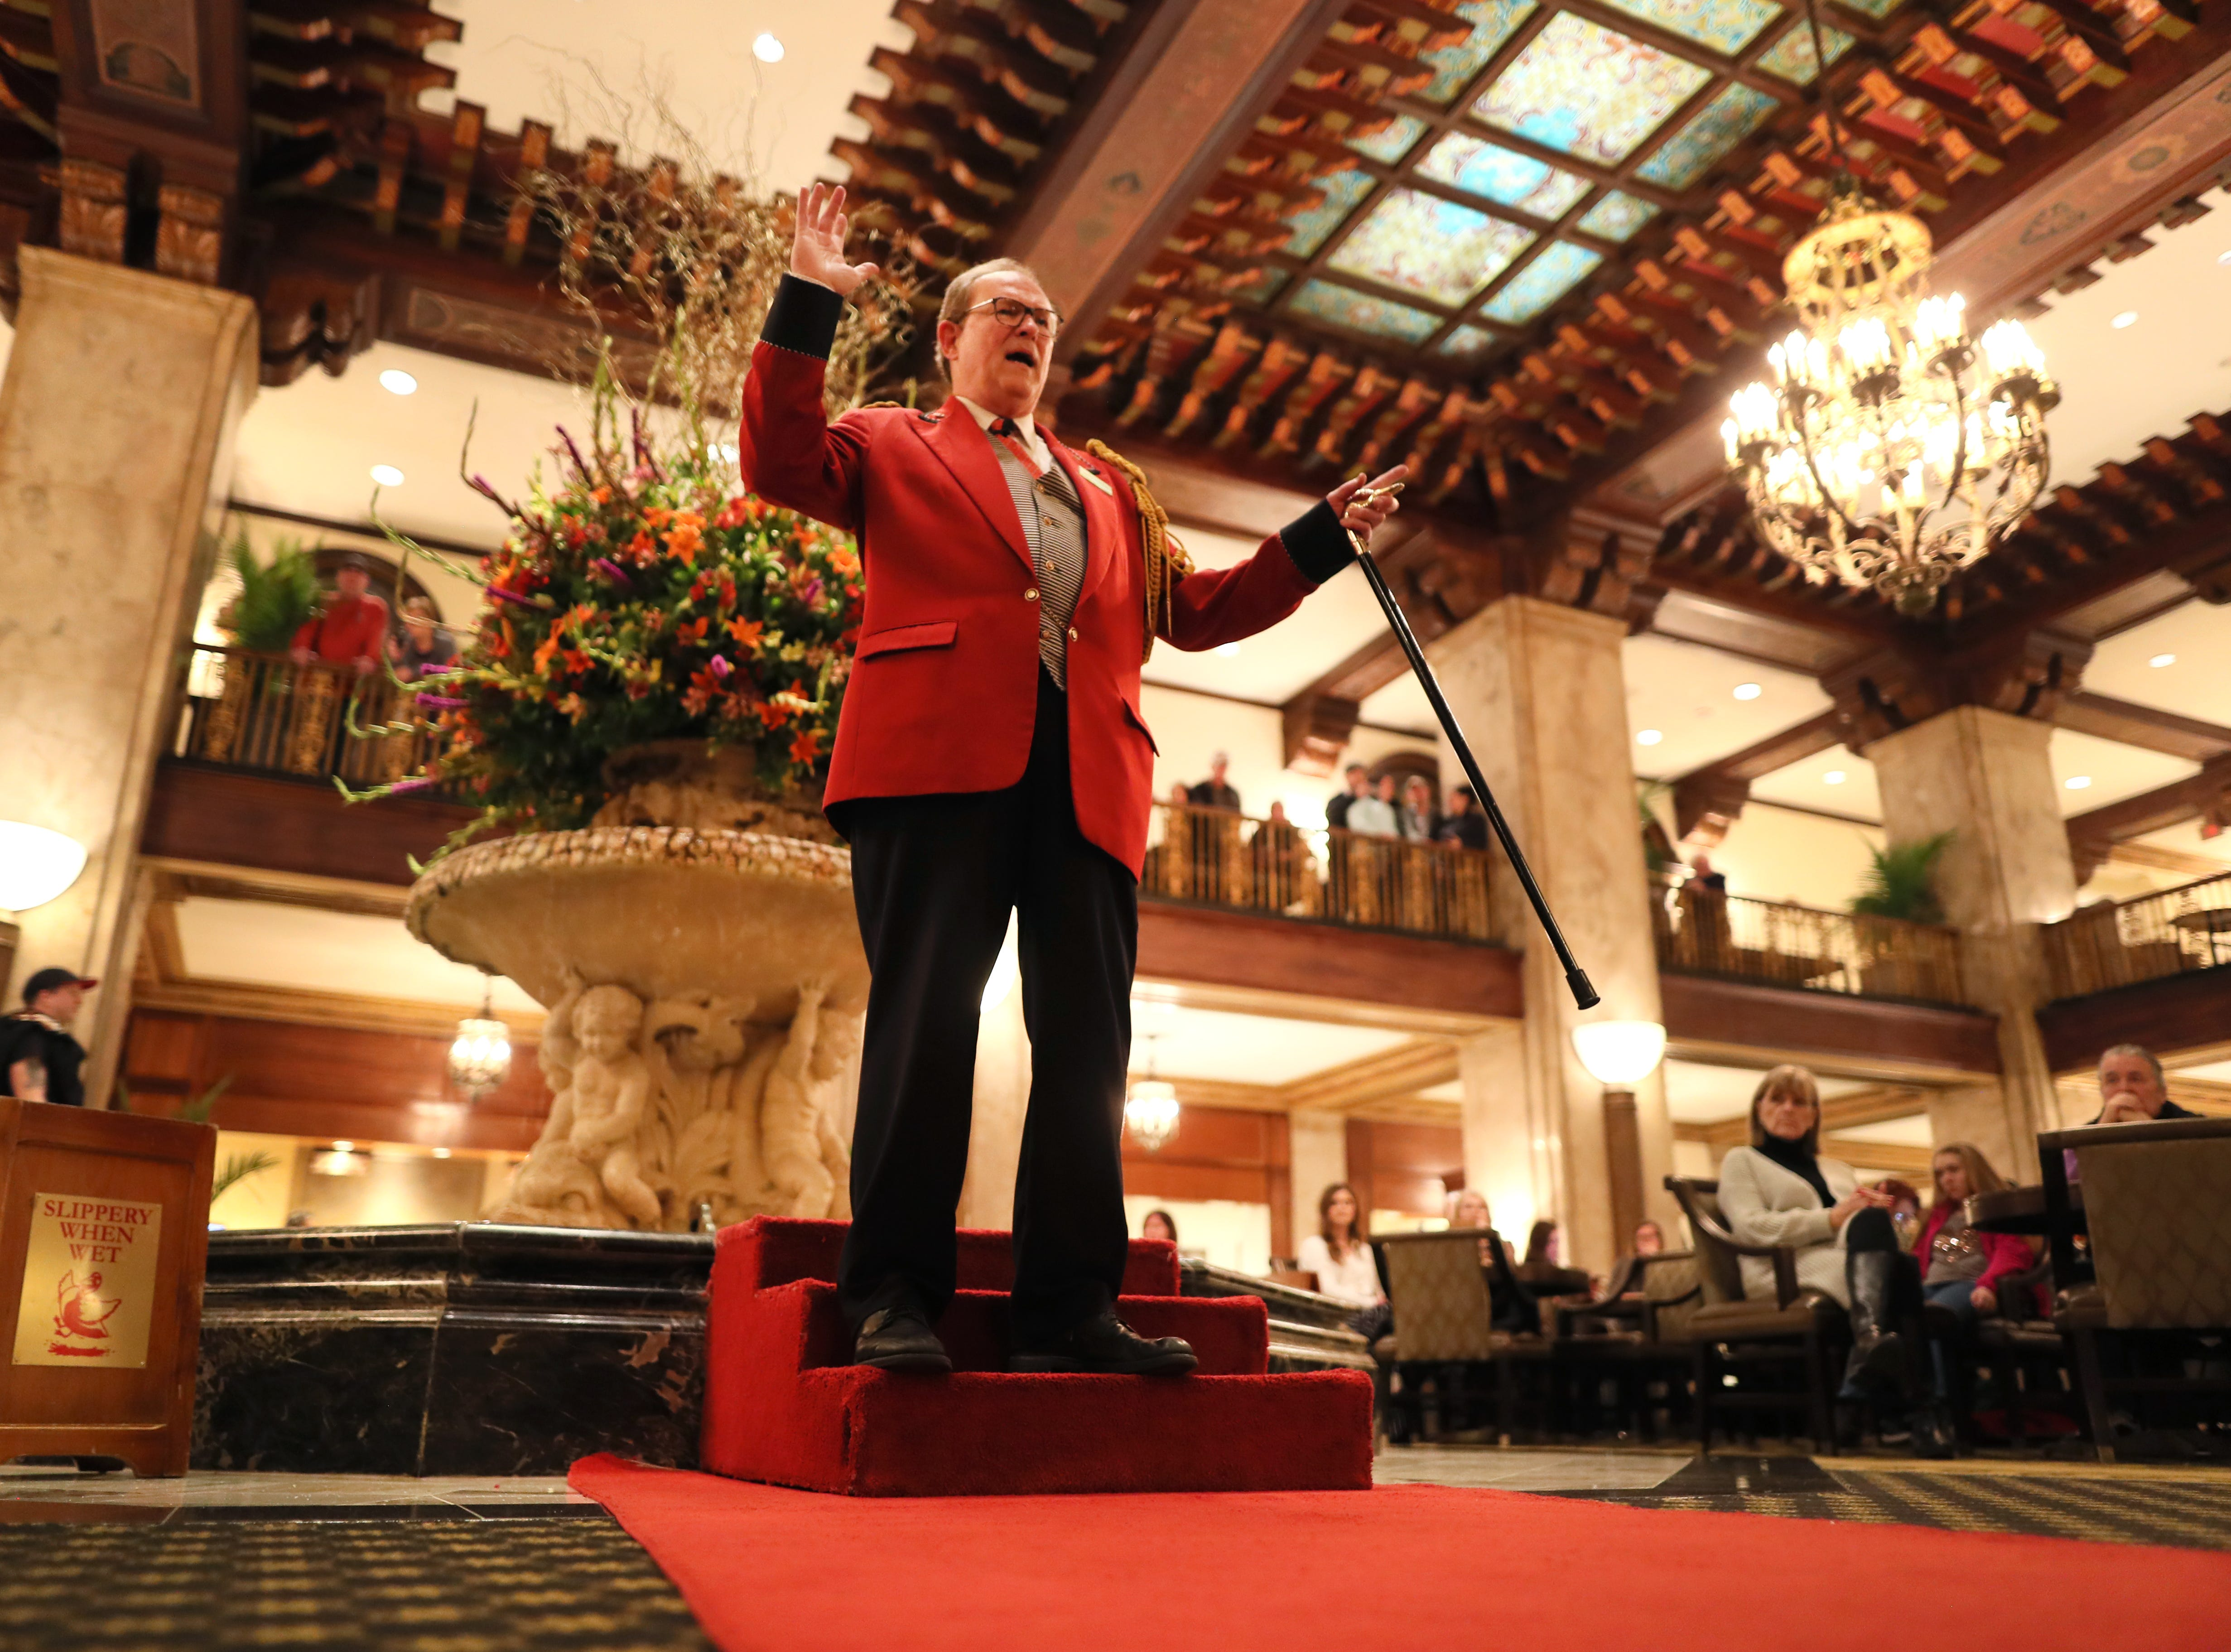 Doug Weatherford, Duckmaster at the Peabody Hotel speaks to the crowd gathered for the marching of the ducks as the iconic downtown Memphis hotel on Thursday, Feb. 21, 2019.